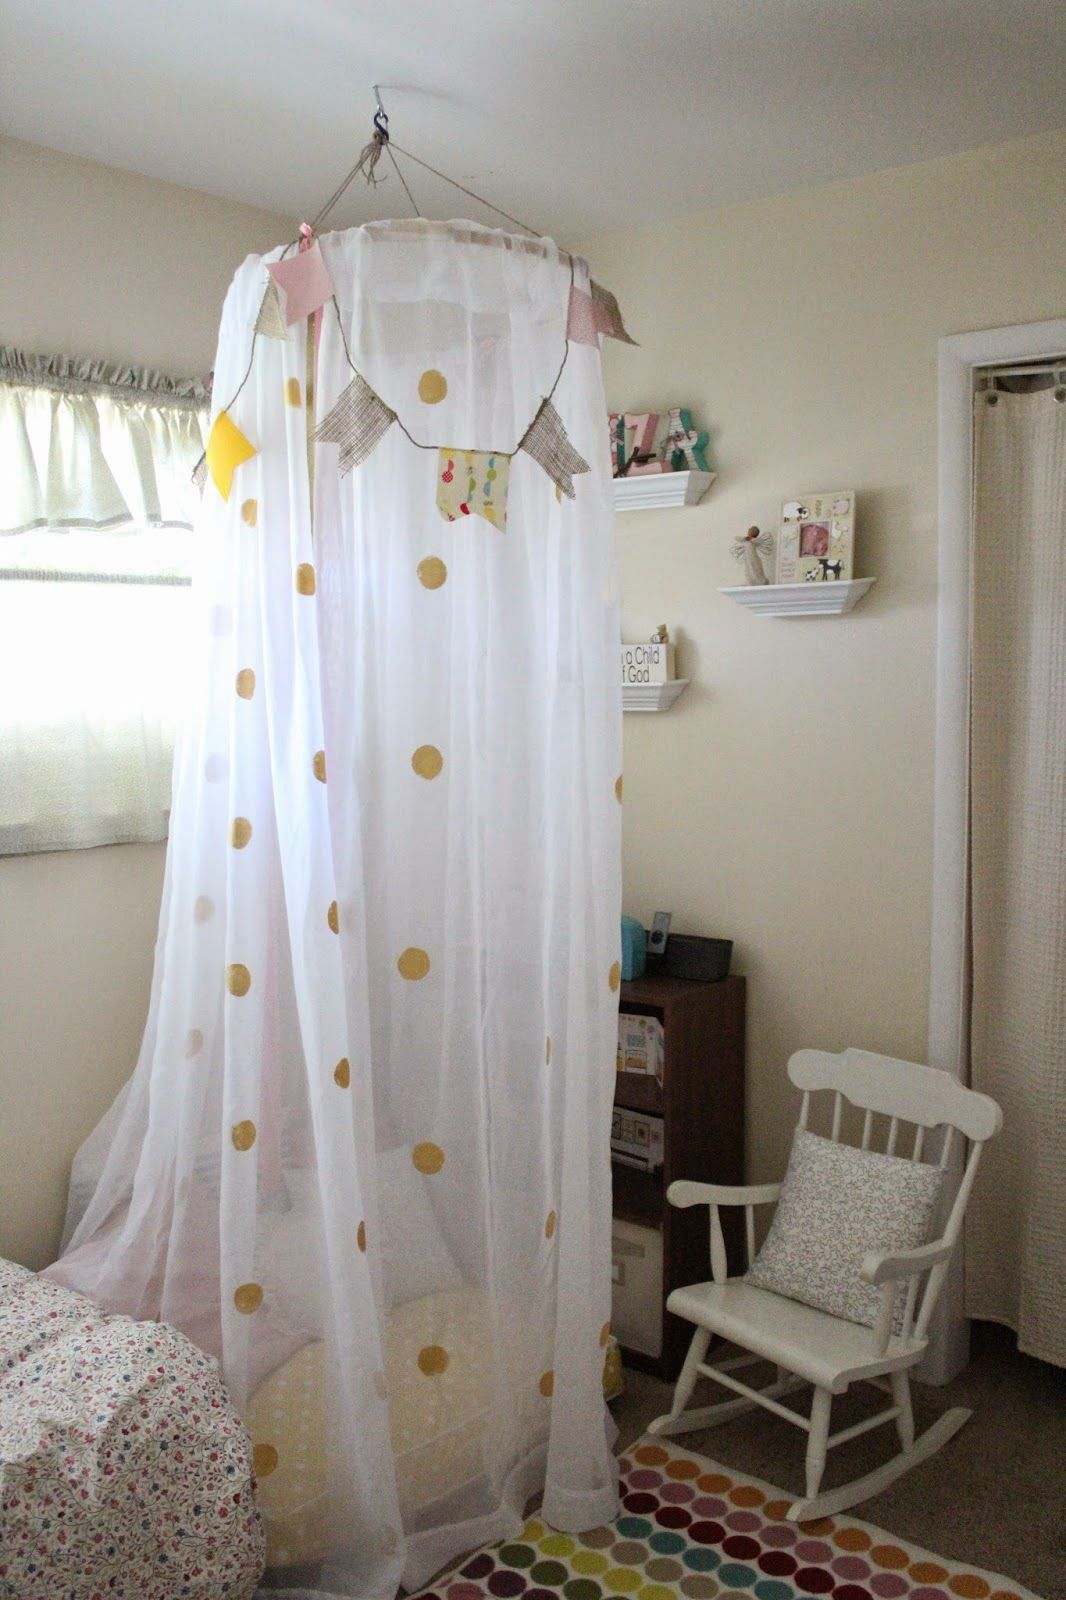 Embroidery hoop and sheer curtains reading tent Mommy Vignettes DIY No-Sew Tent Canopy & Embroidery hoop and sheer curtains reading tent Mommy Vignettes ...